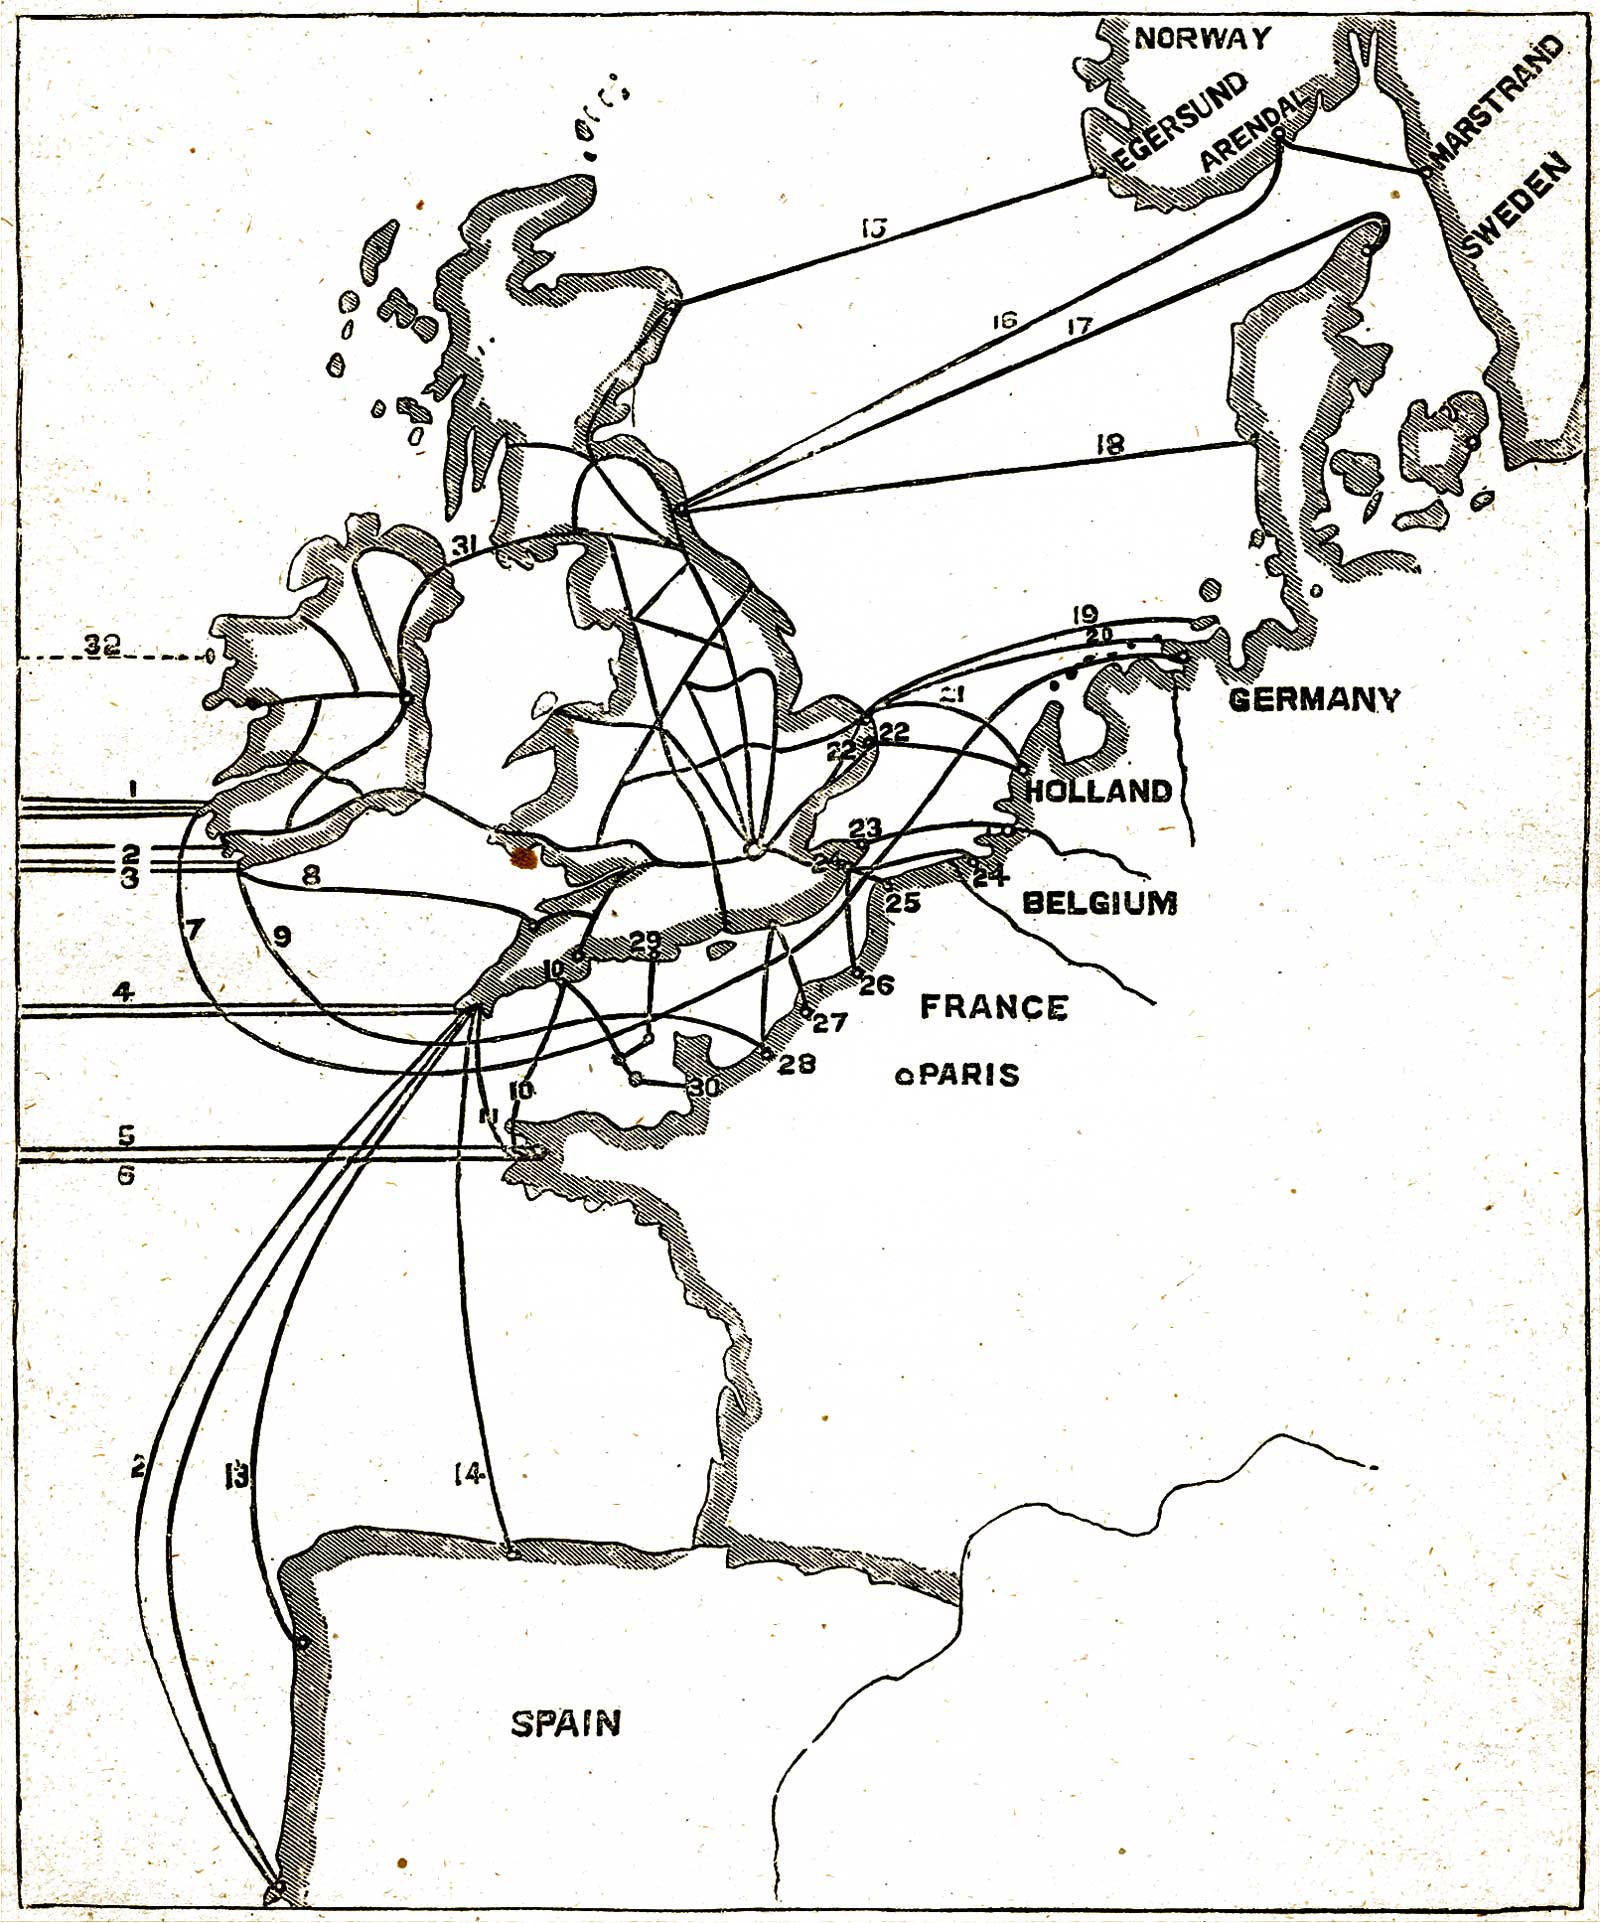 History of the Atlantic Cable & Submarine Telegraphy - The